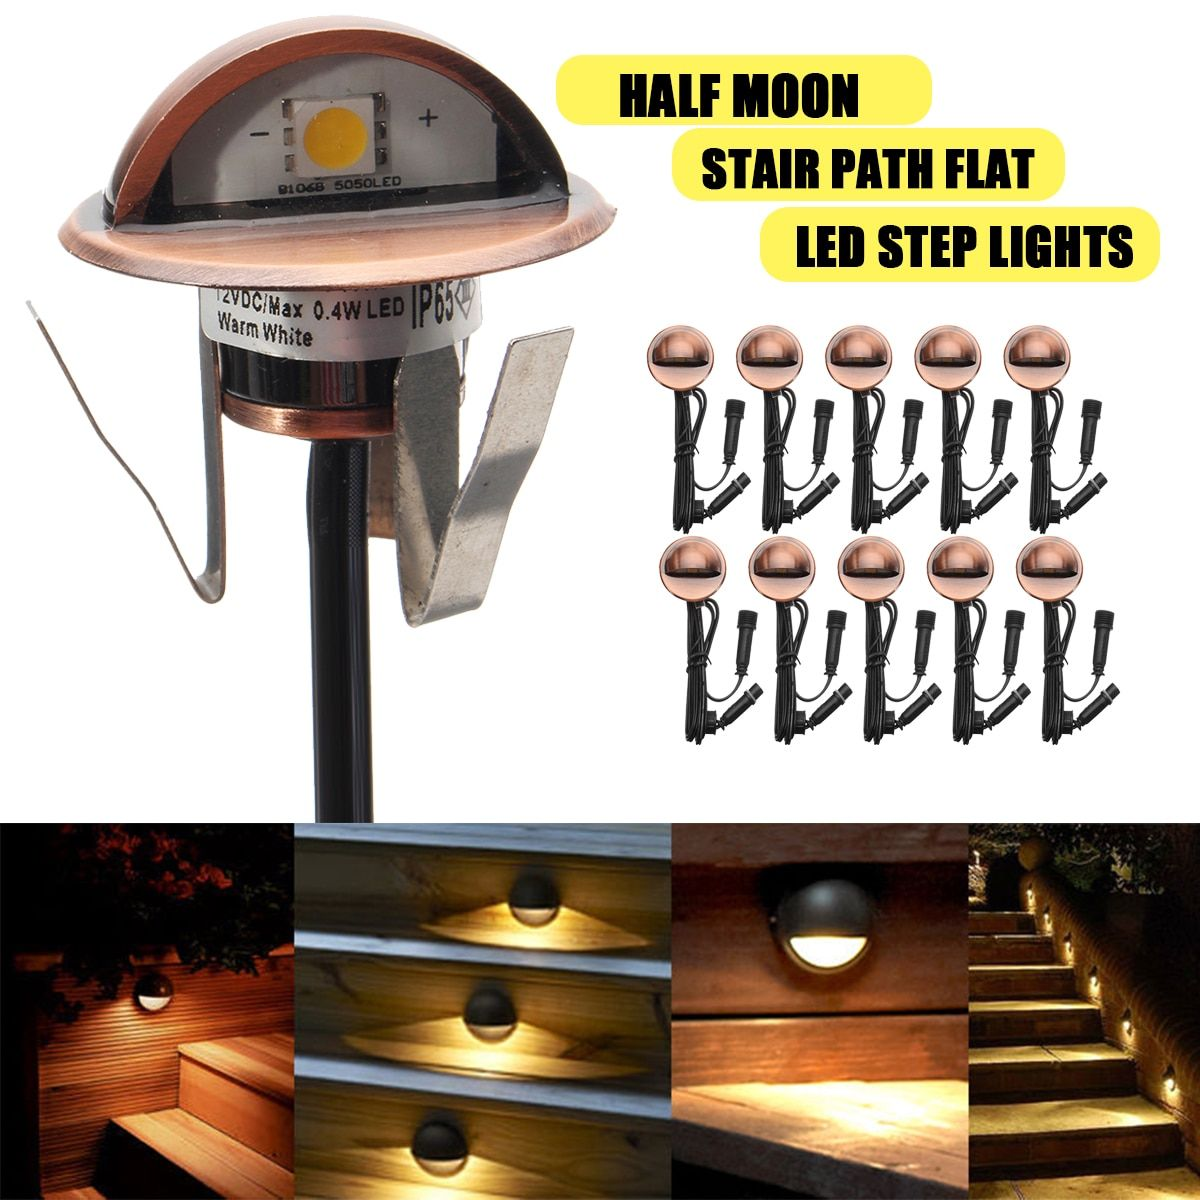 10Pcs 12V Warm Light Garden LED Step Light Outdoor Wall Stair Flat Lamp Half Moon Type Park Path Decorative Night Lamp